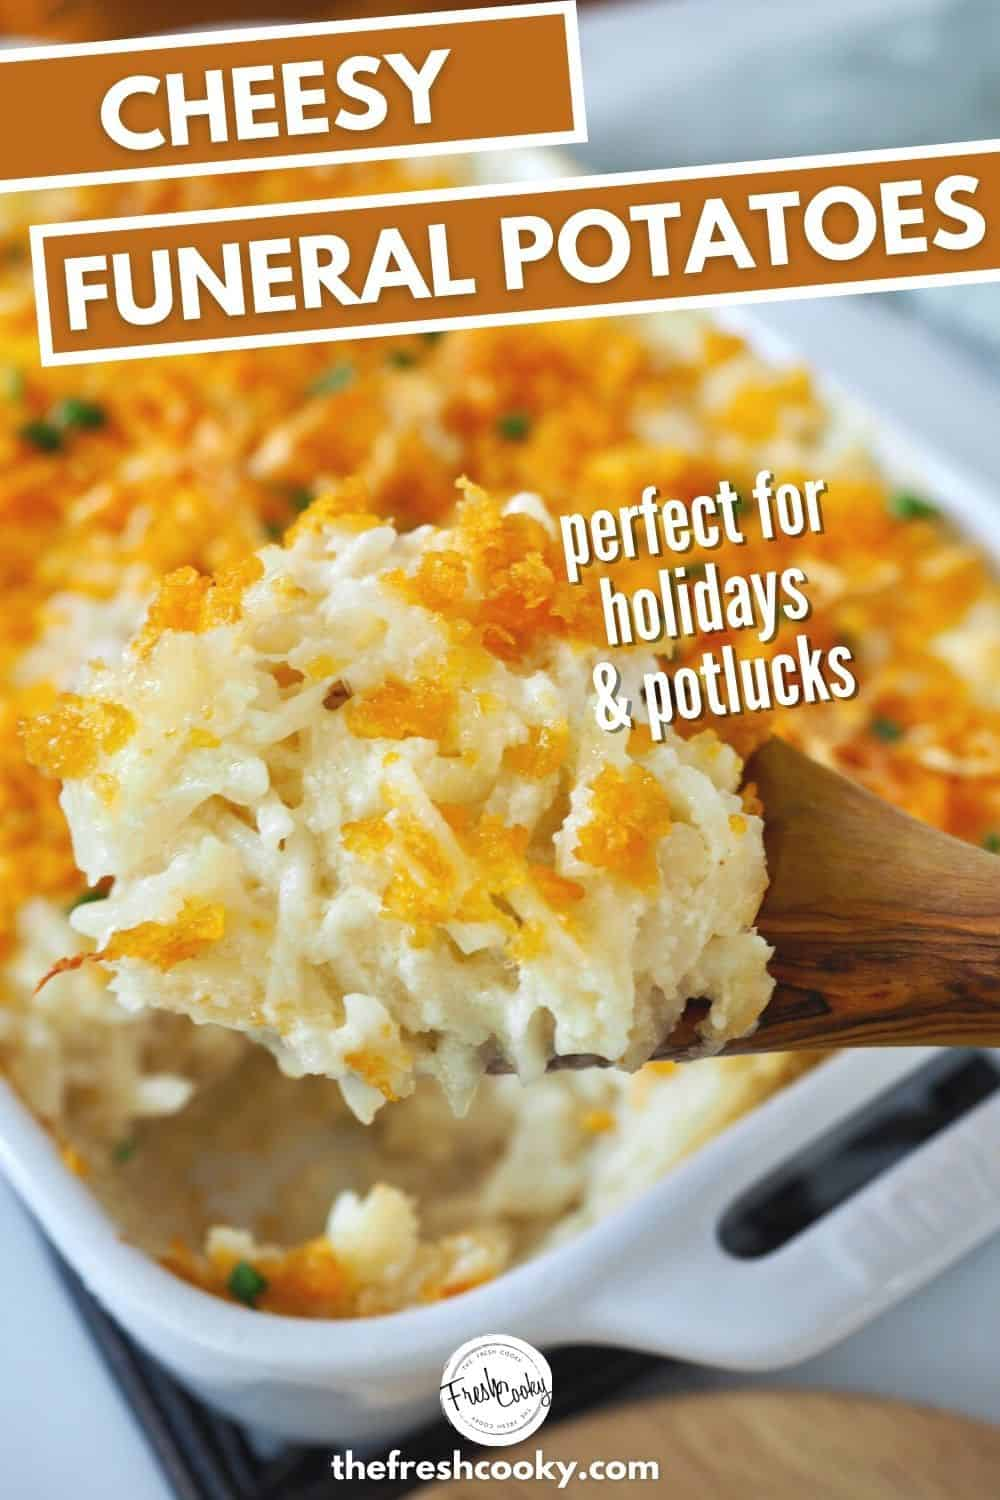 Find out what Funeral Potatoes are on The Fresh Cooky! Using hash browns, sour cream, a homemade white sauce, shredded cheddar cheese (no canned soup) and topped with a buttery corn flake topping, these are the easiest, best cheesy potatoes ever! Make ahead, freezer friendly and gluten free option! WIN! Frozen hash browns mixed with a homemade cream sauce, real shredded cheese, sour cream and topped with a buttery corn flake topping. Great as a Thanksgiving or Christmas side dish (or any holiday) or potluck. #thefreshcooky #cheesyfuneralpotatoes #partypotatoes via @thefreshcooky